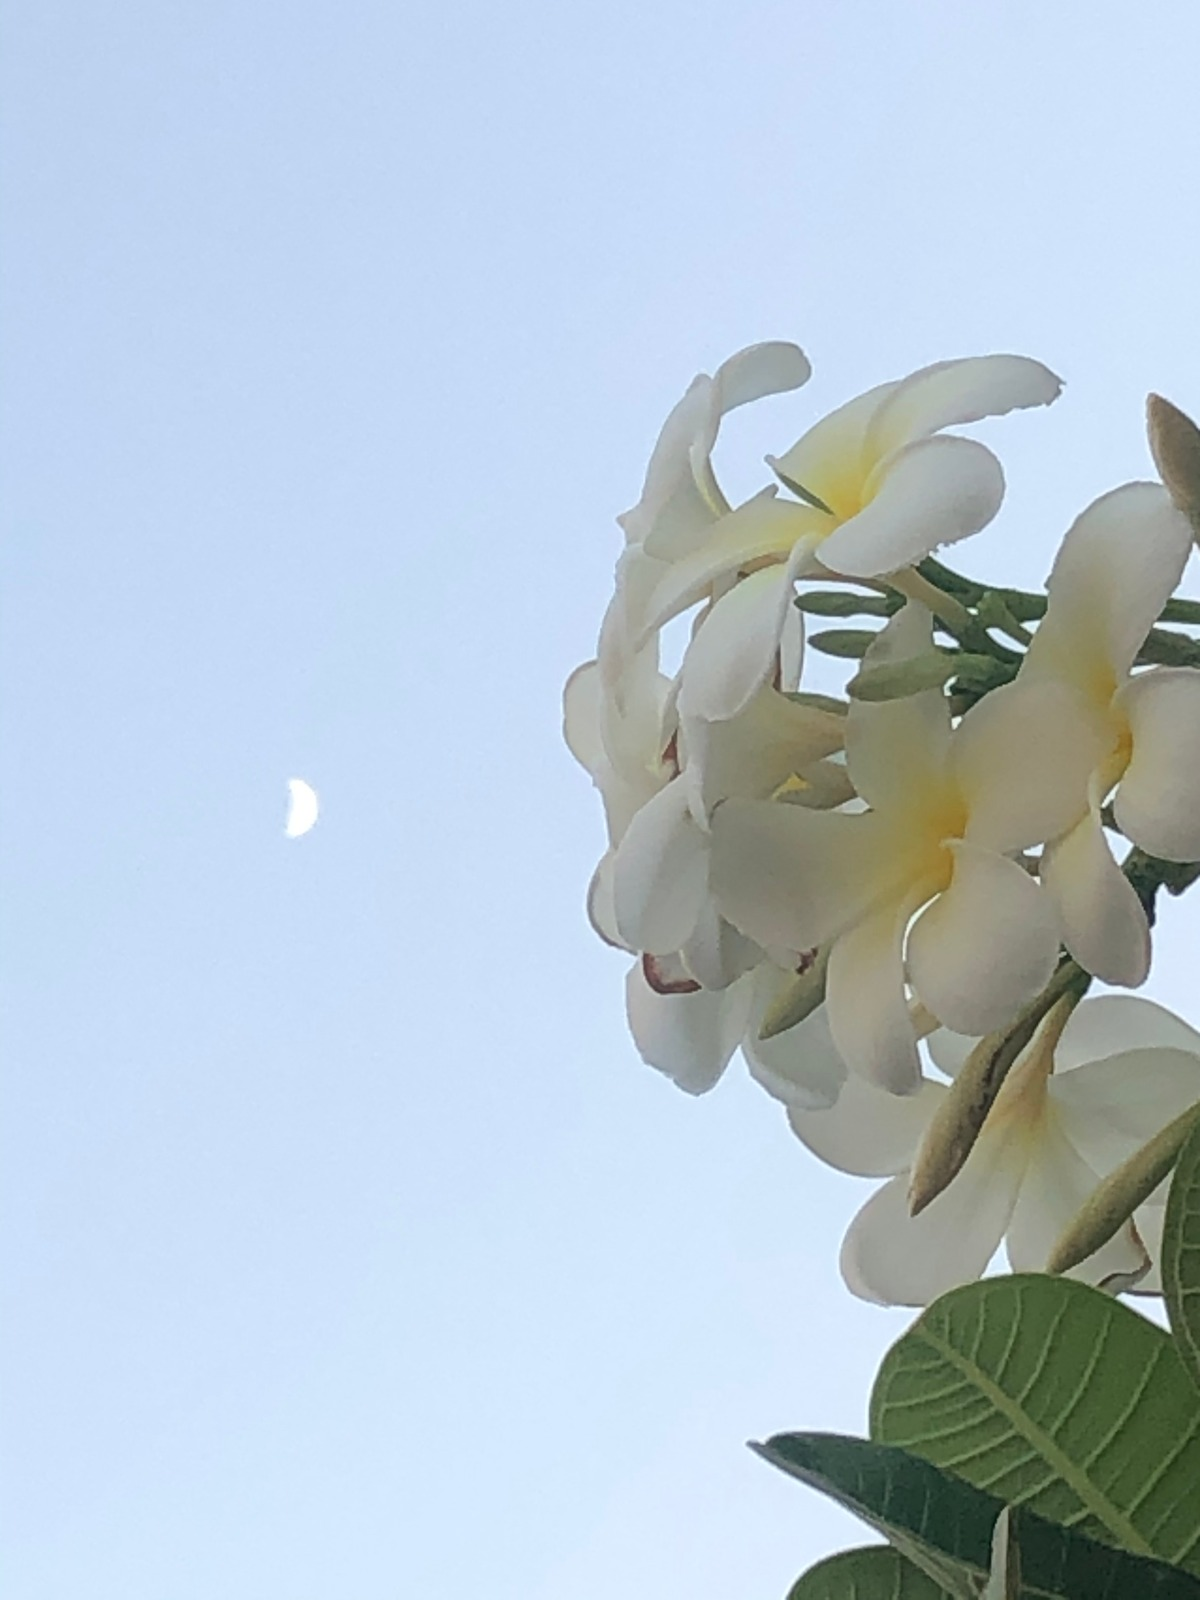 Where the Moon Meets The Calachuchi flower